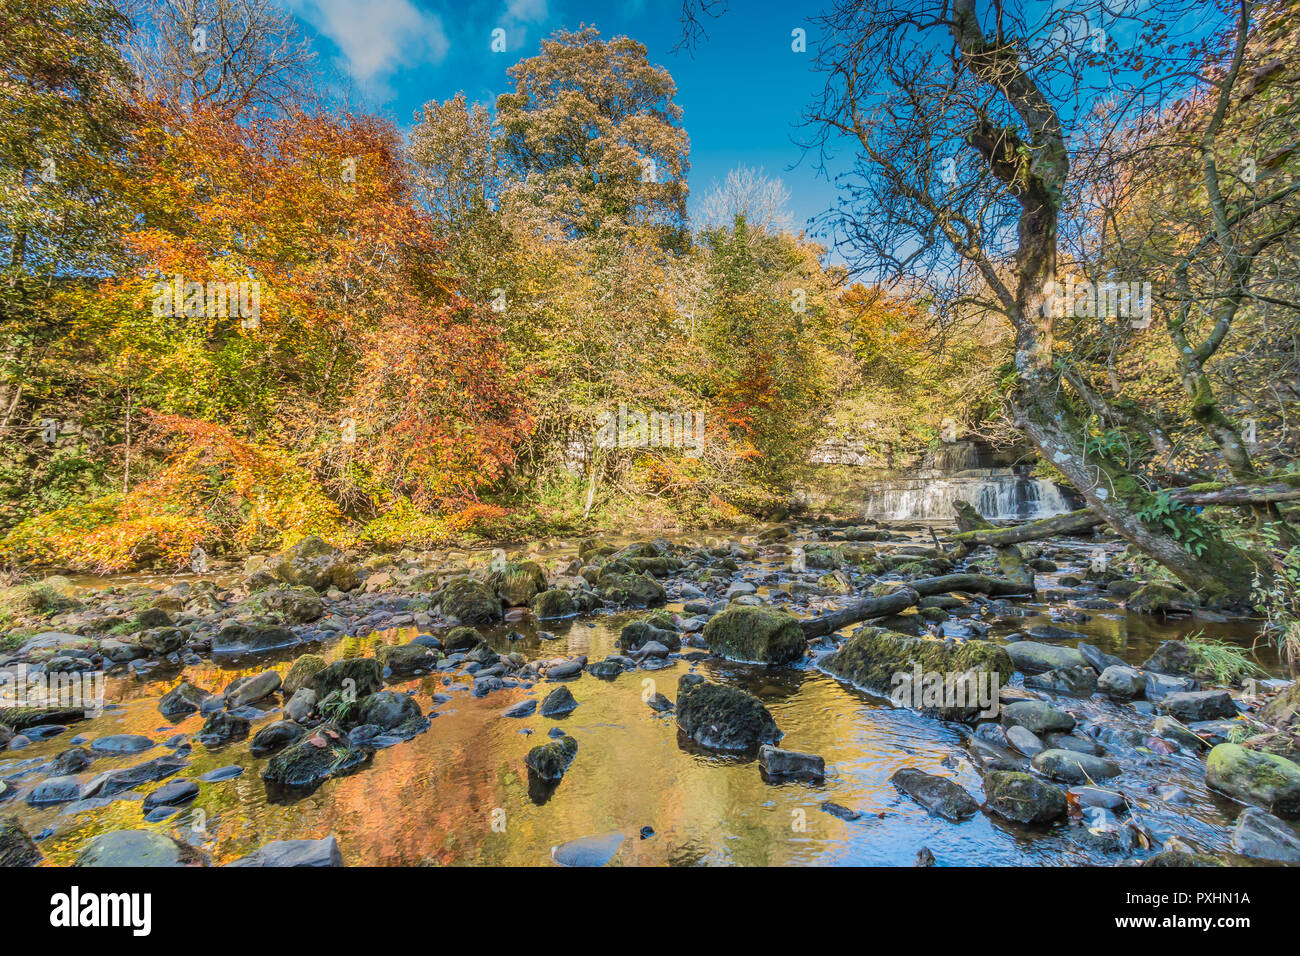 yorkshire-dales-national-park-autumn-landscape-vivid-autumn-colours-at-cotter-force-waterfall-hawes-wensleydale-uk-PXHN1A.jpg